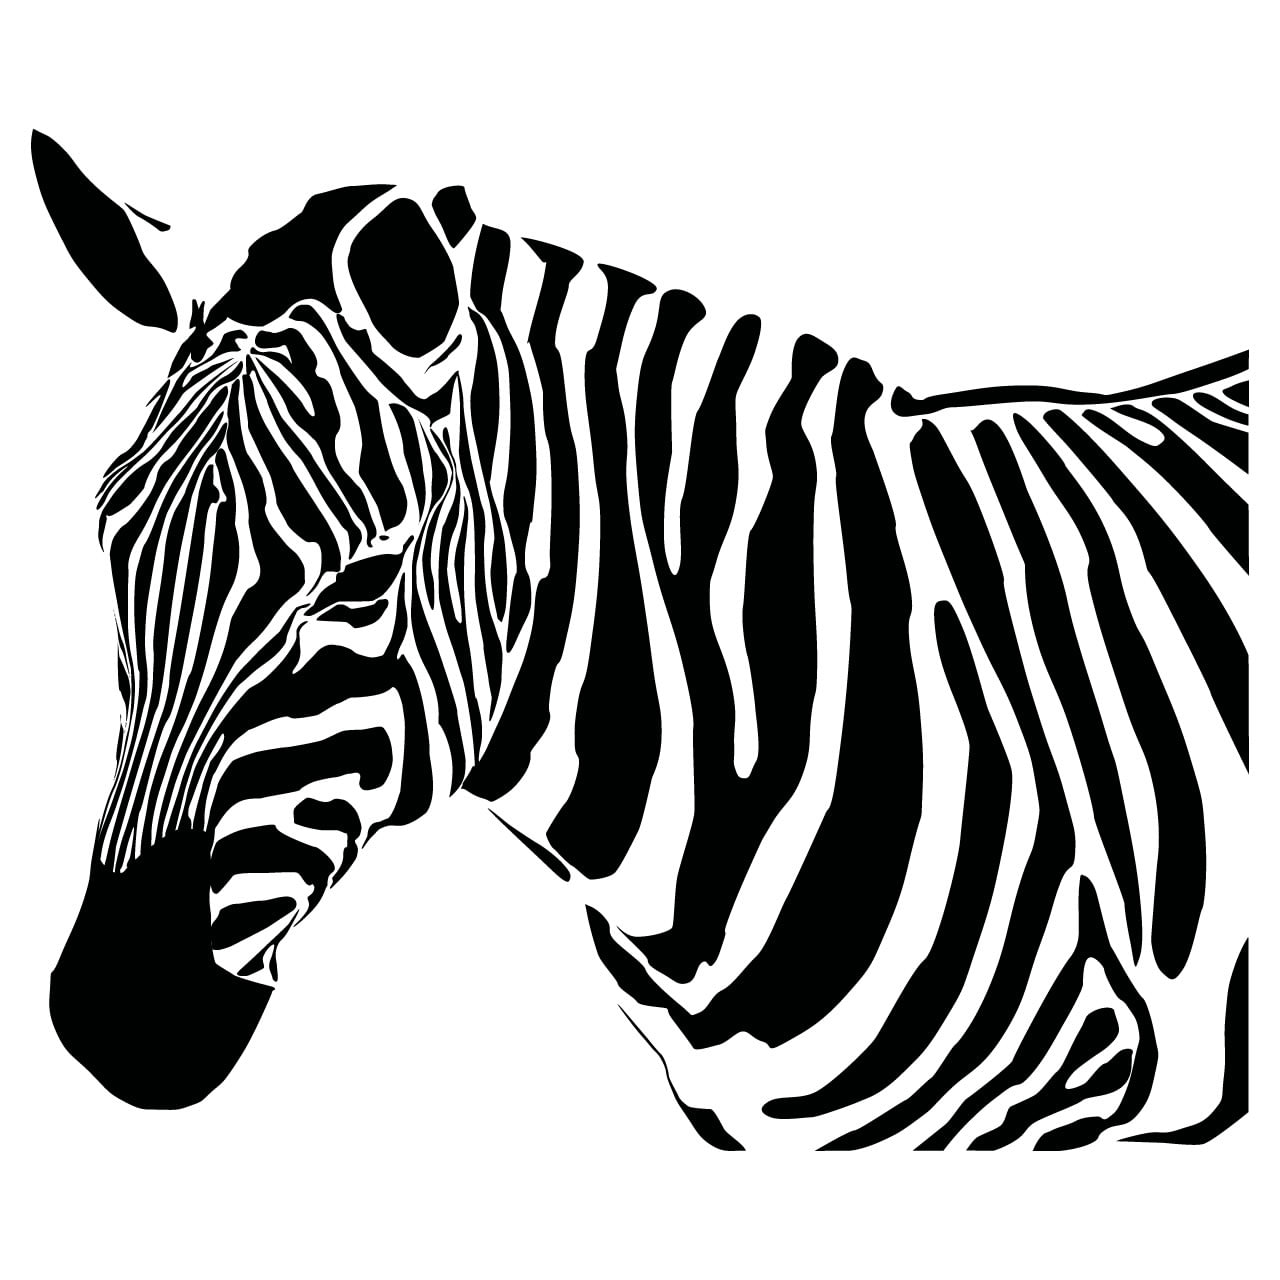 Zebra Head Outline The gallery for -->...